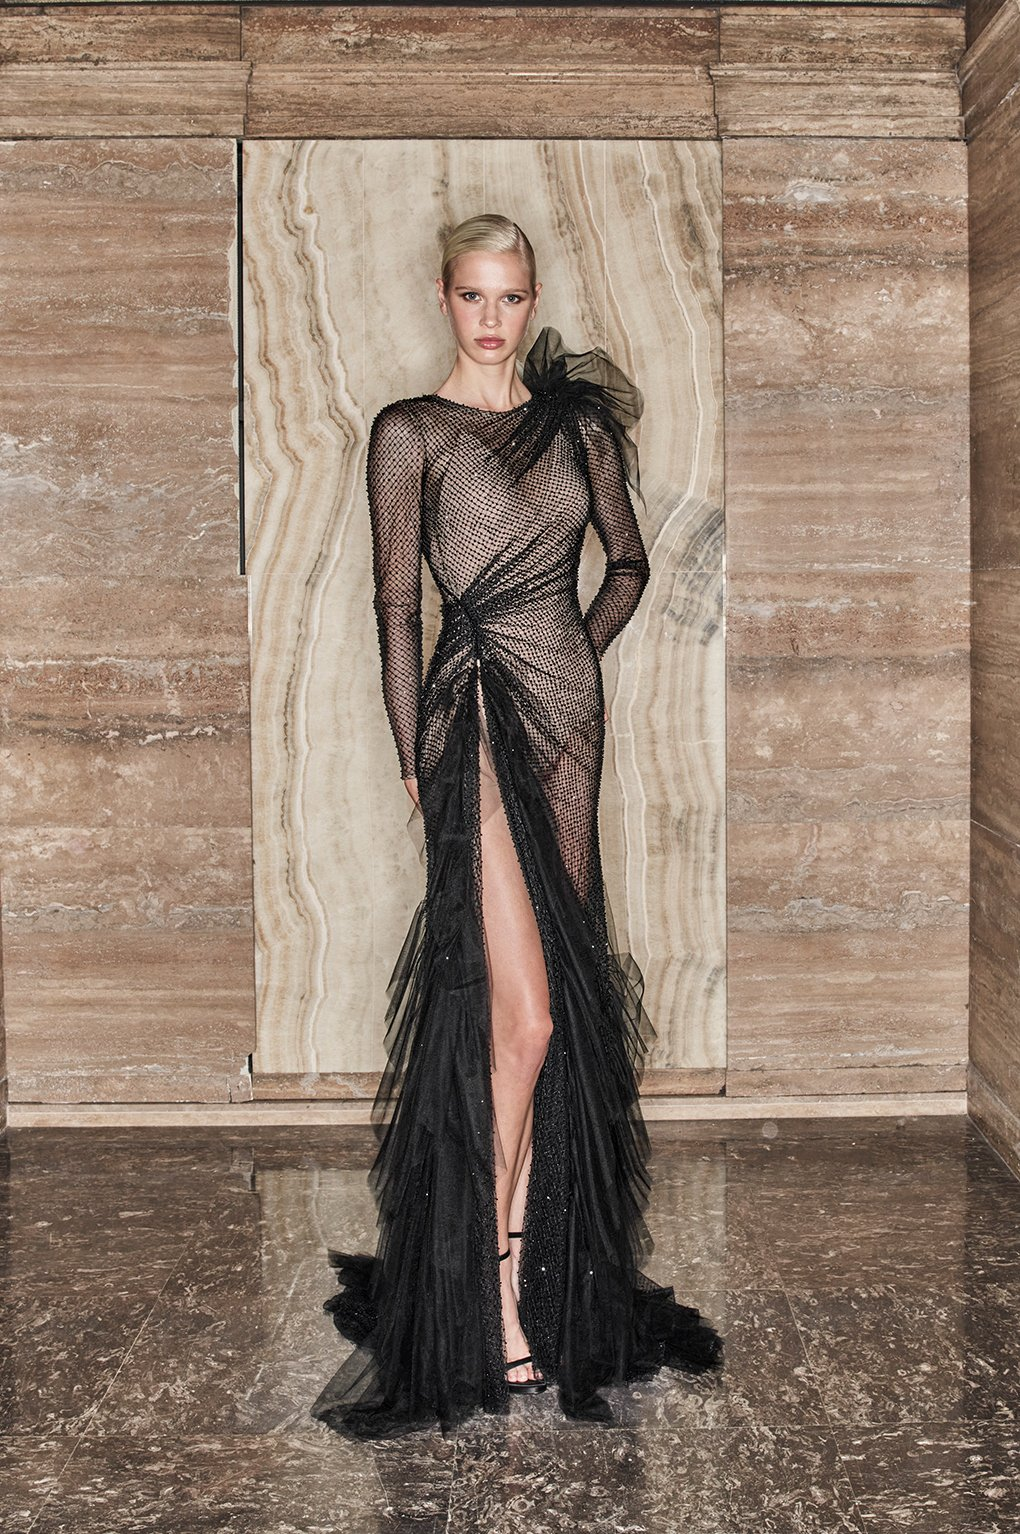 Atelier Versace Fall 2020 Couture Fashion Show Photos